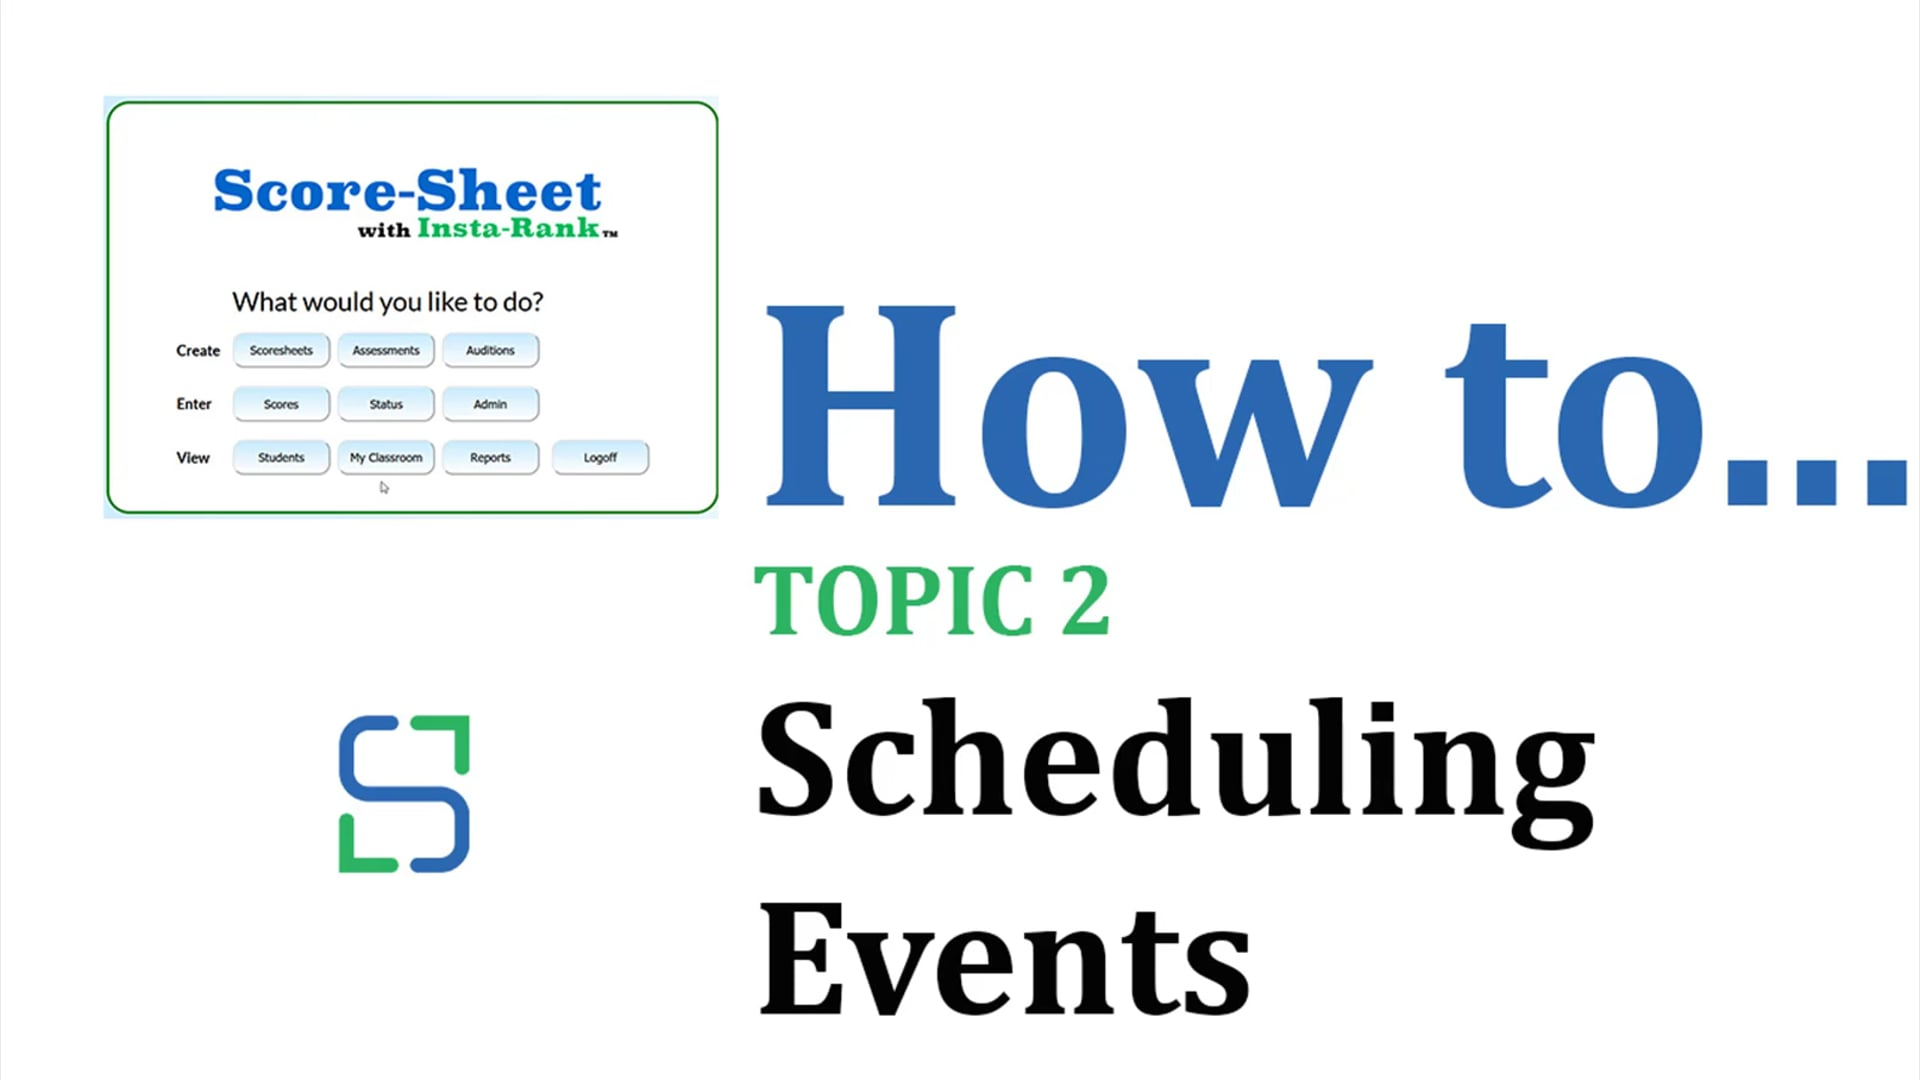 8 - SCHEDULING EVENTS